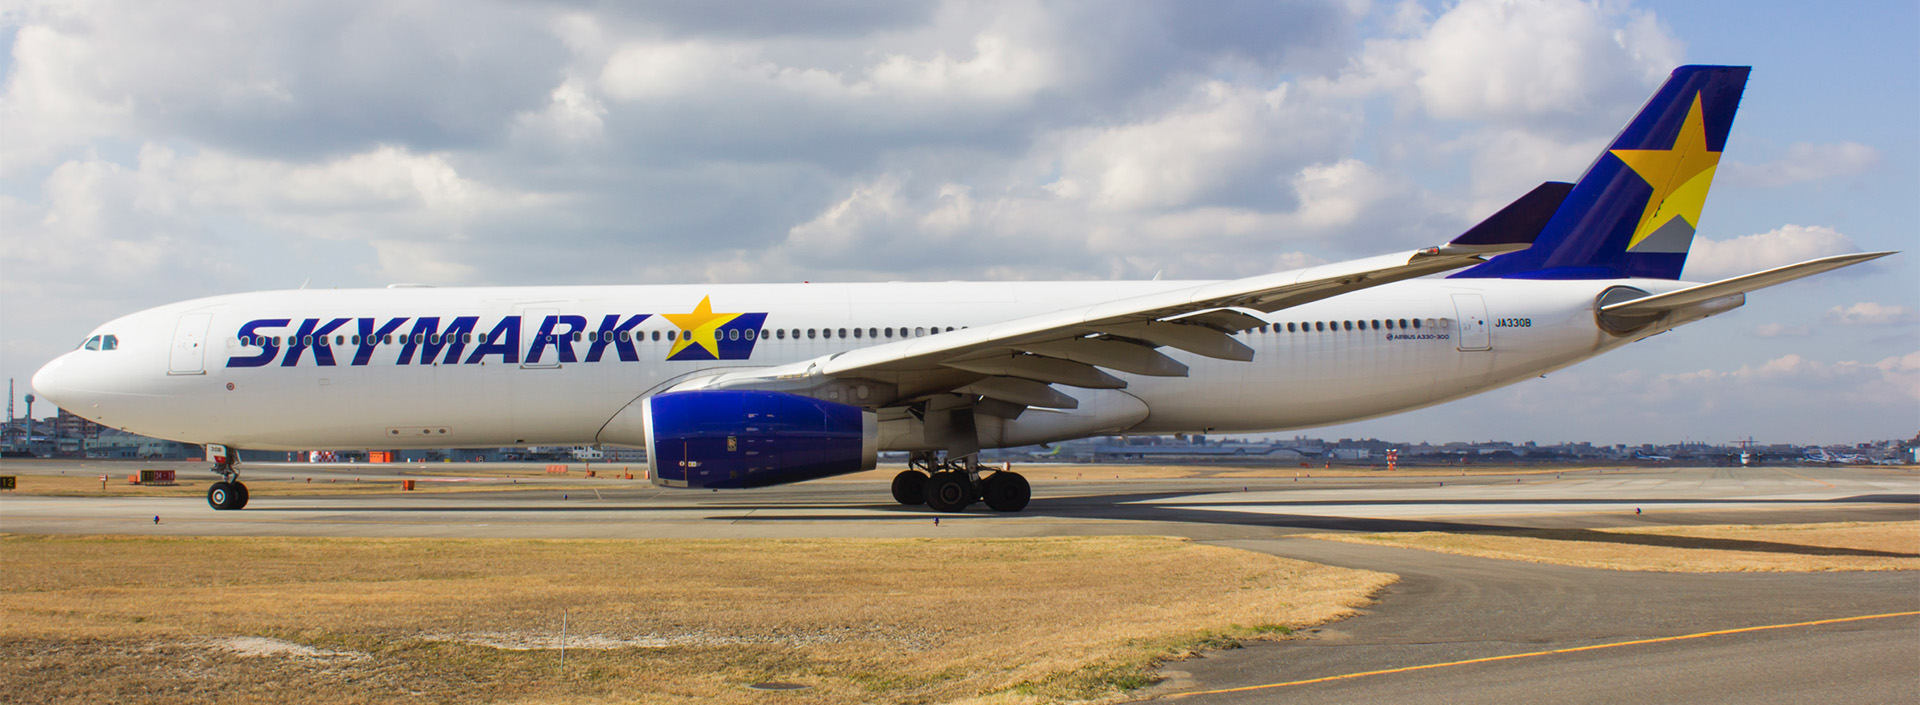 Chasing Skymark A330s